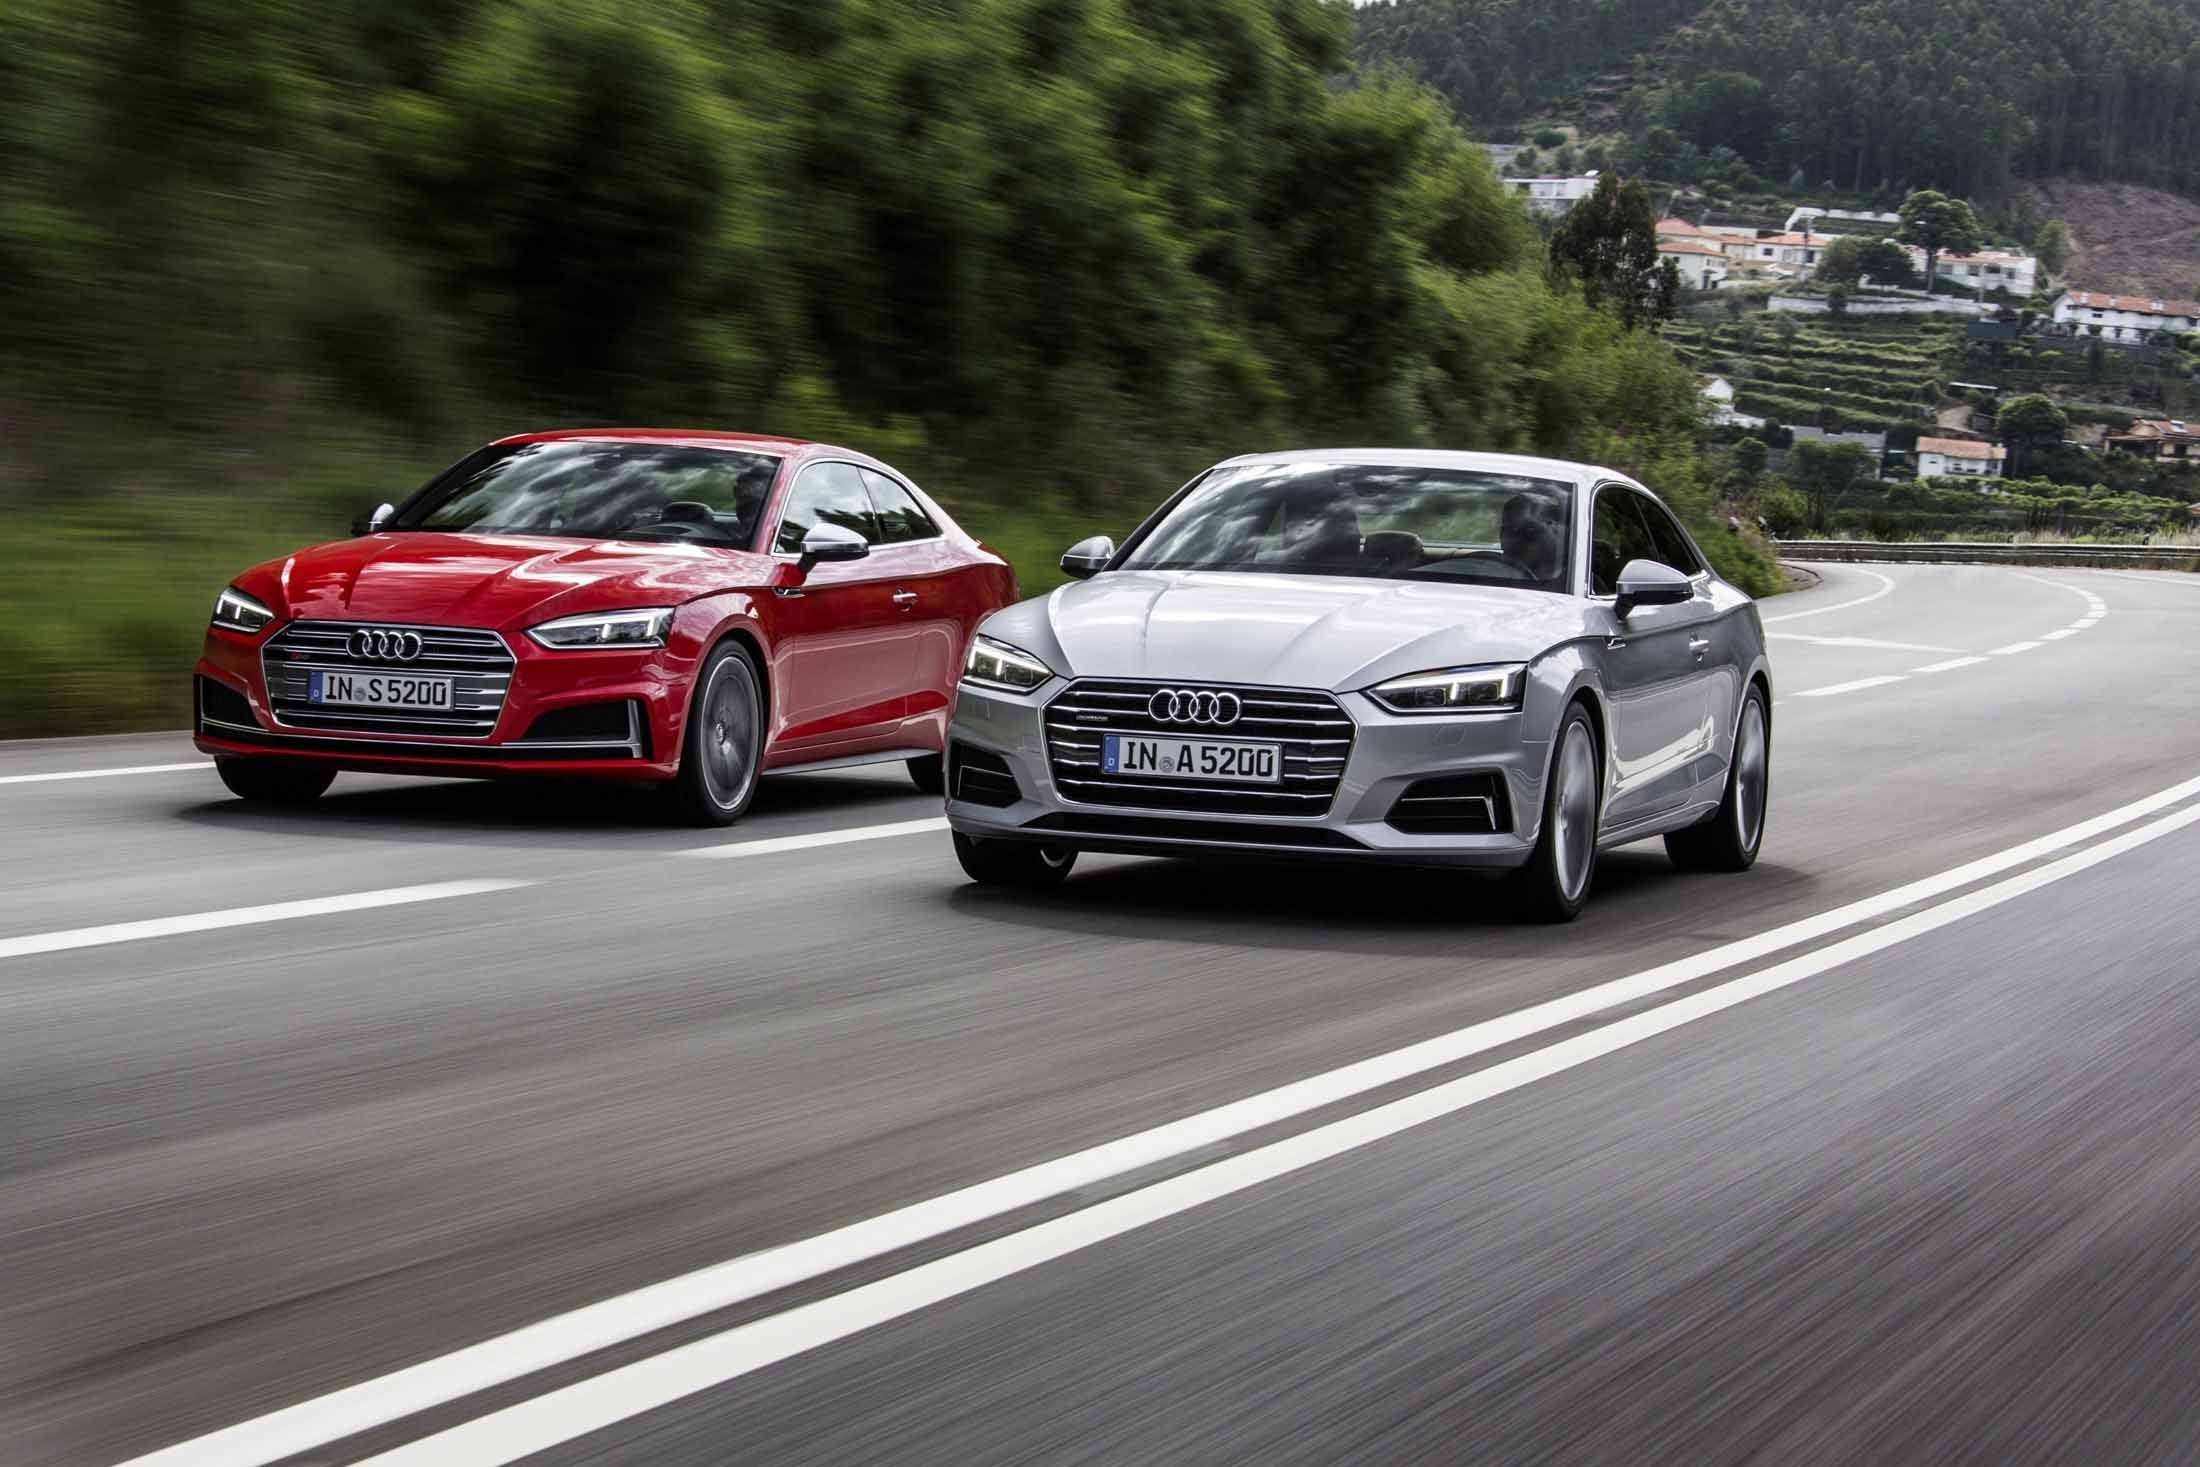 54 Best Review 2020 Audi Rs5 Tdi Redesign with 2020 Audi Rs5 Tdi